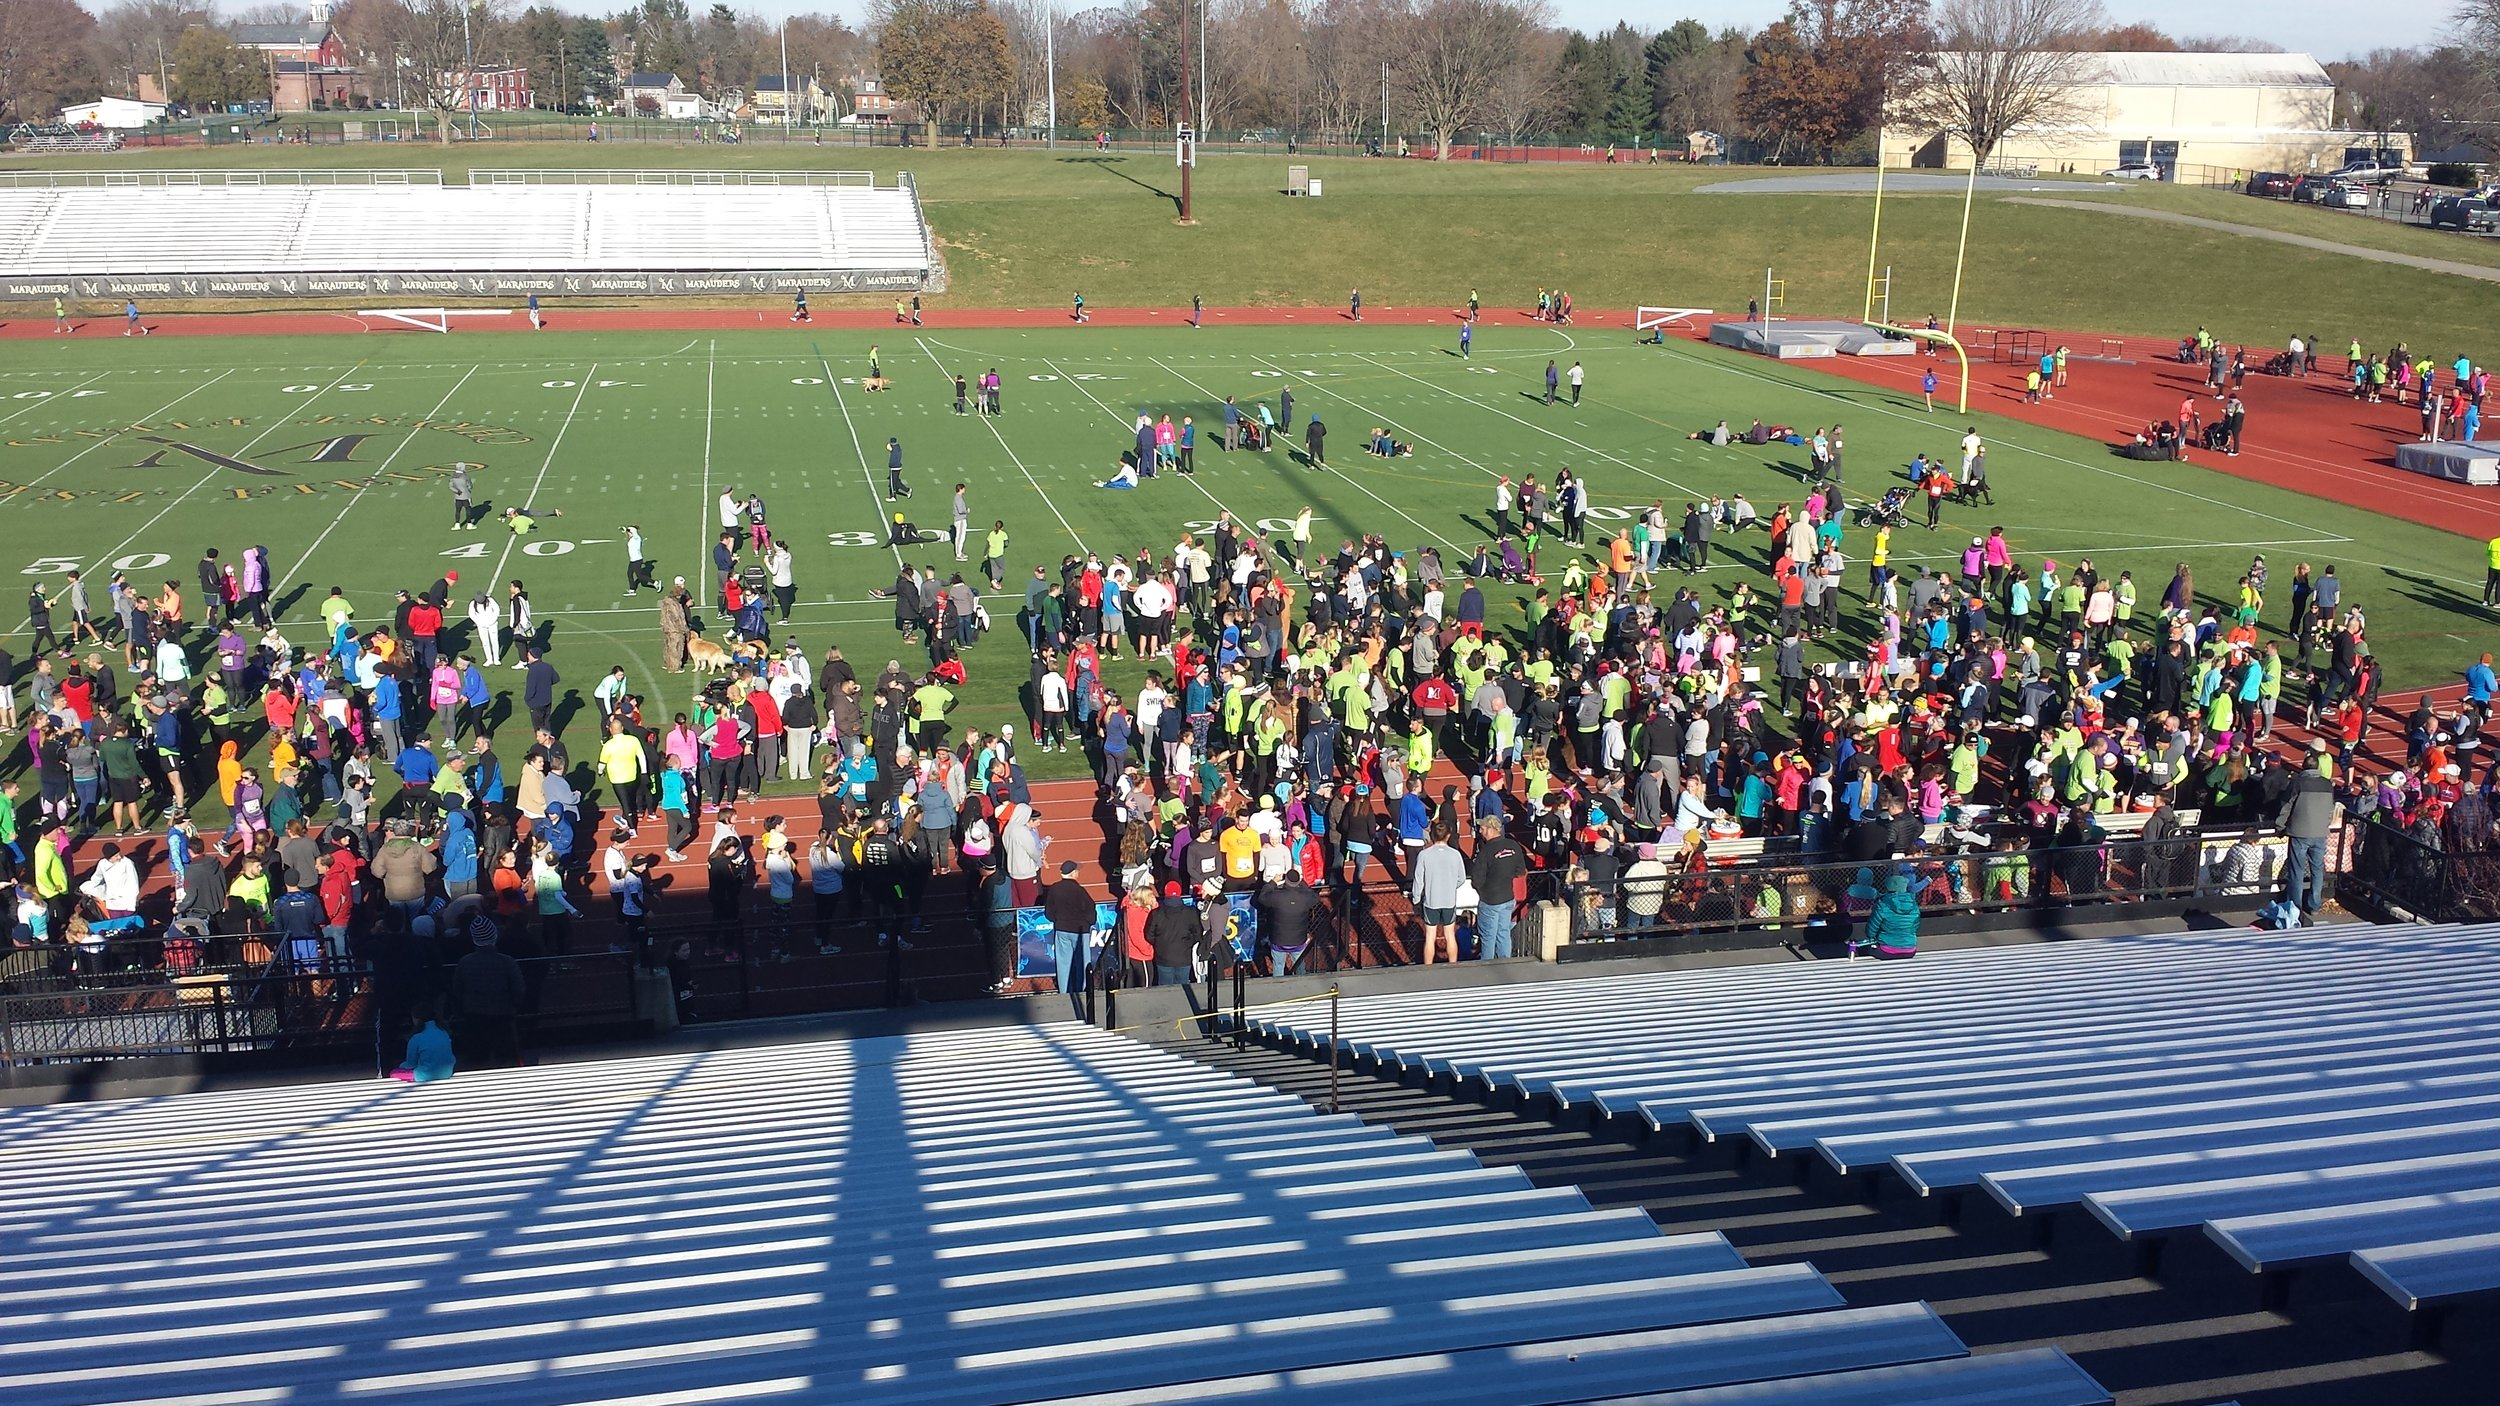 Runners and supporters at the finish area of the Turkey Trot 5K run